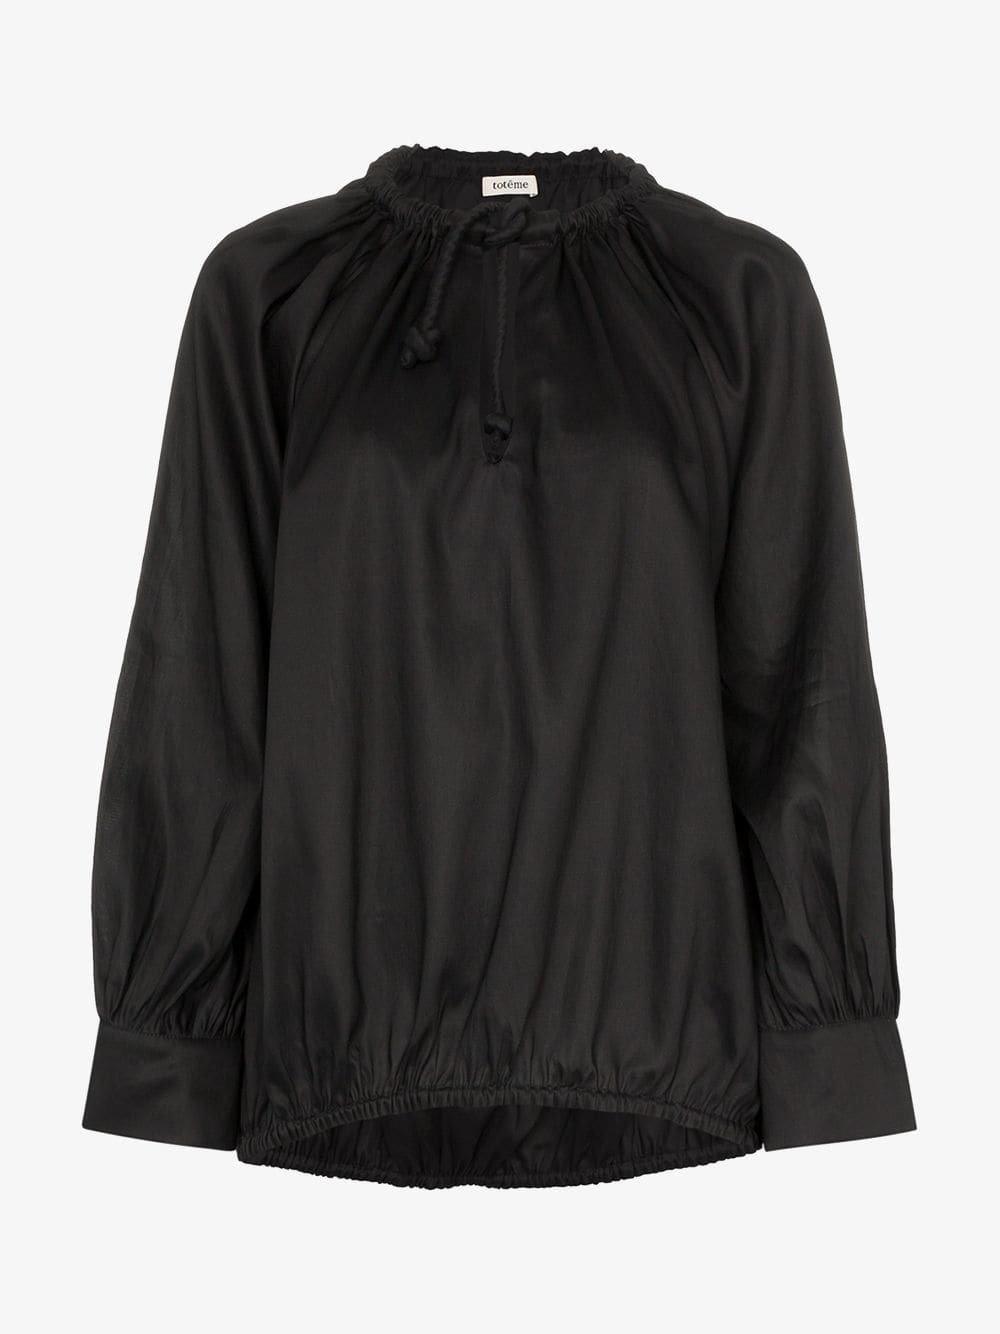 Toteme tie neck ruched satin top in black